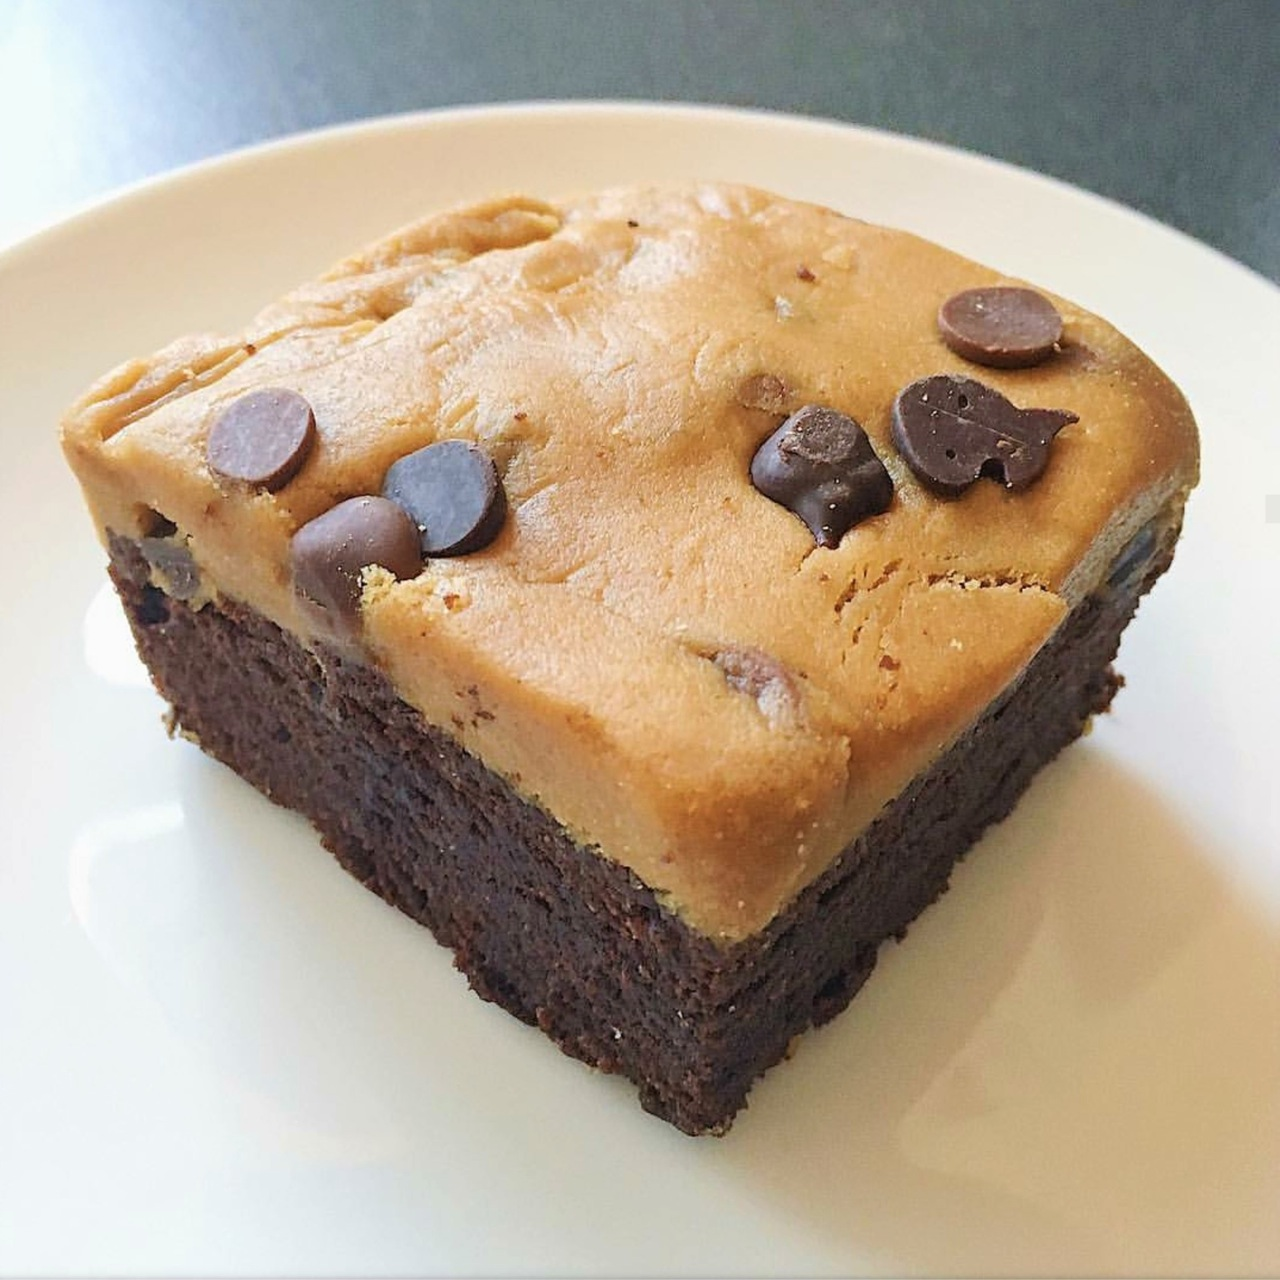 https://i1.wp.com/fatgayvegan.com/wp-content/uploads/2019/06/Cookie-Dough-Brownie-12-2.jpg?fit=1280%2C1280&ssl=1